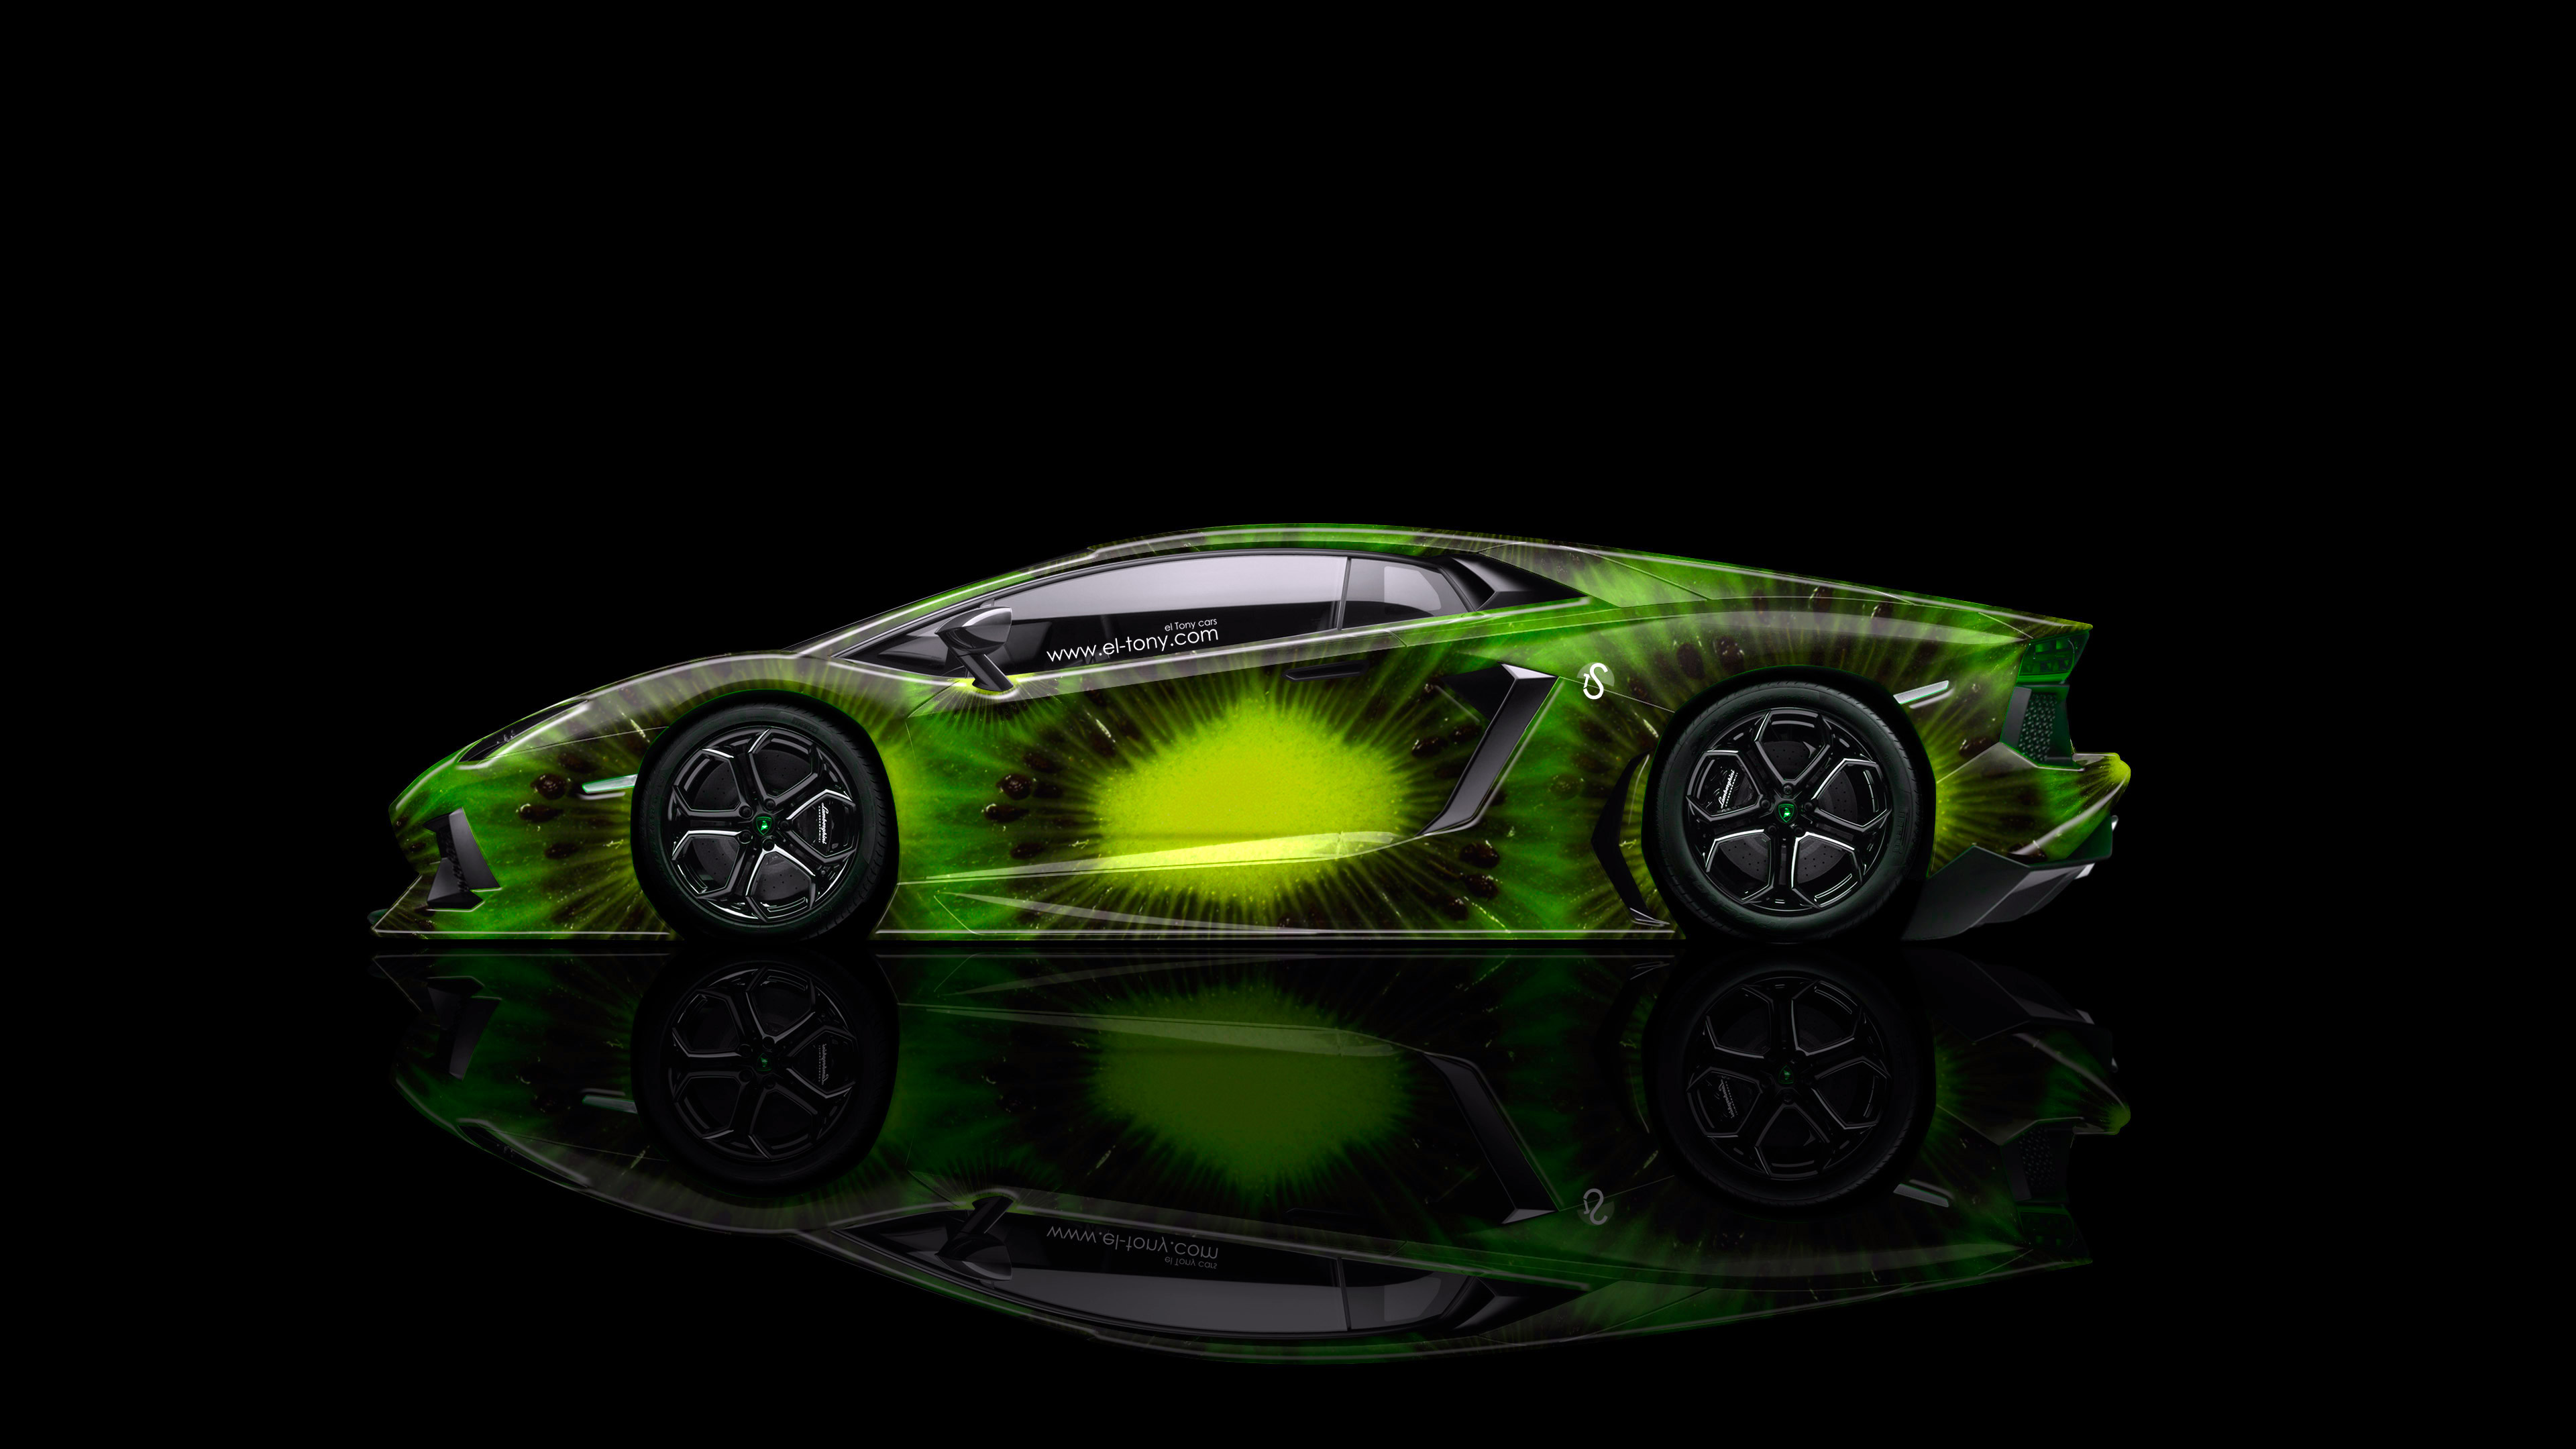 Ordinaire Lamborghini Aventador Side Kiwi Aerography Car 2014 Green